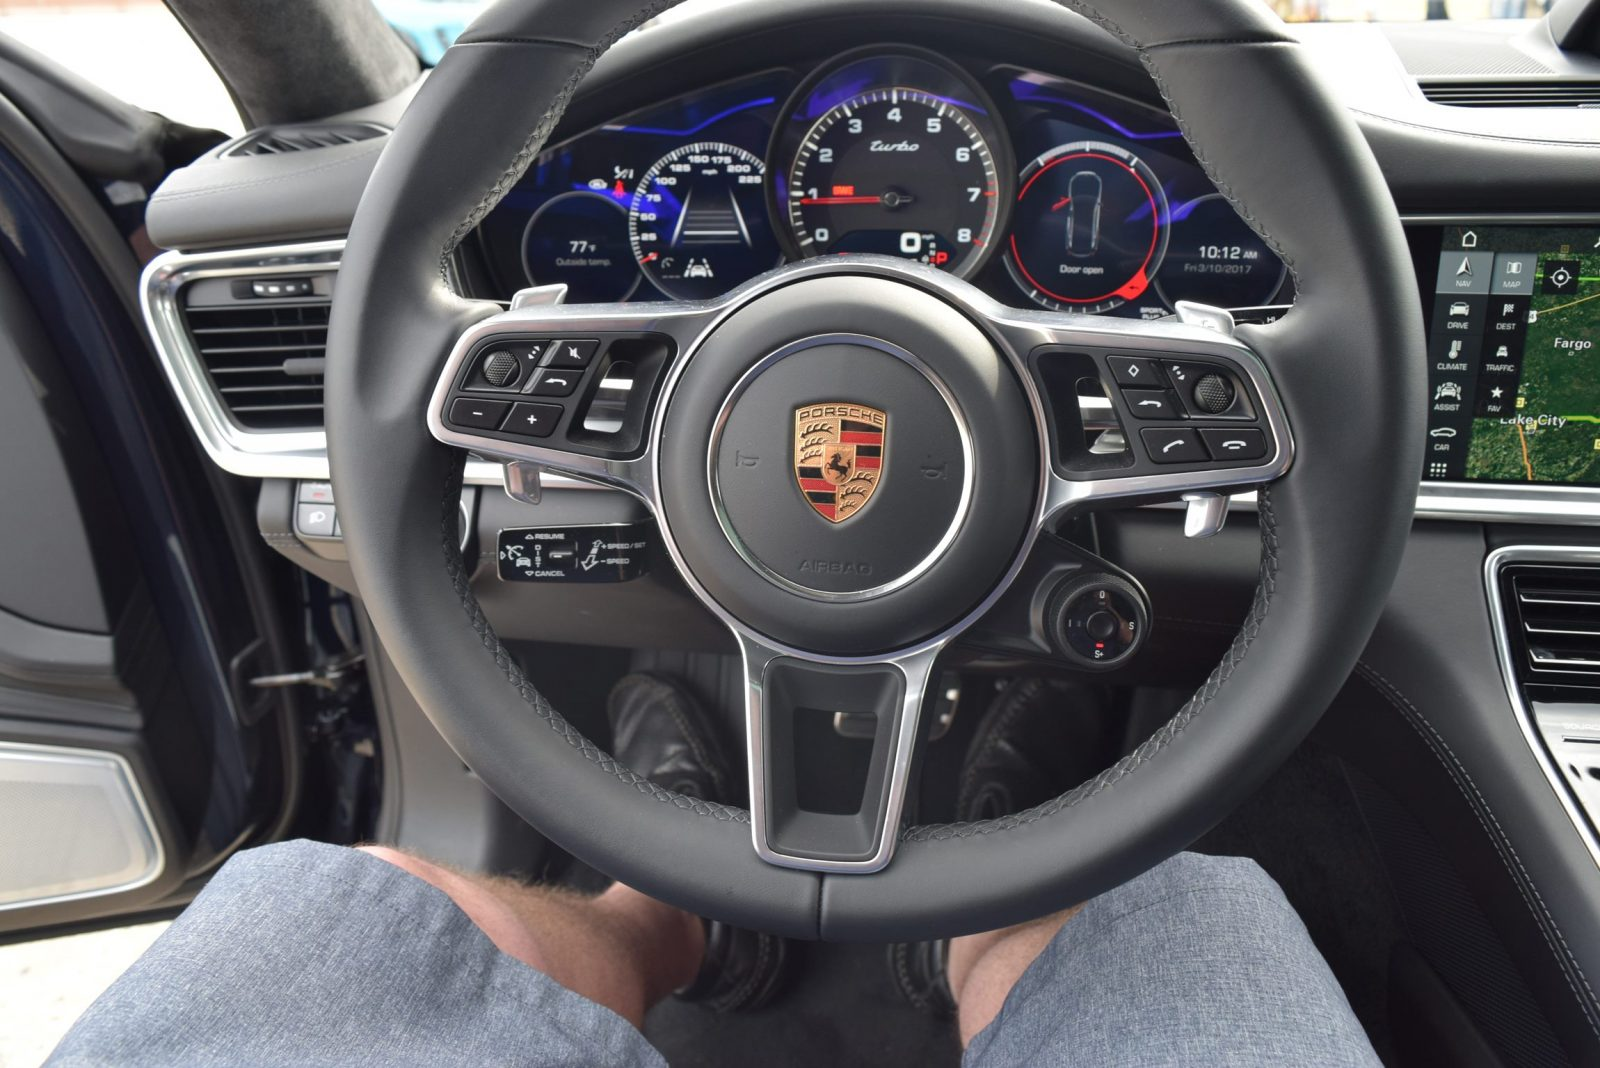 2017 Porsche Panamera TURBO Interior 14